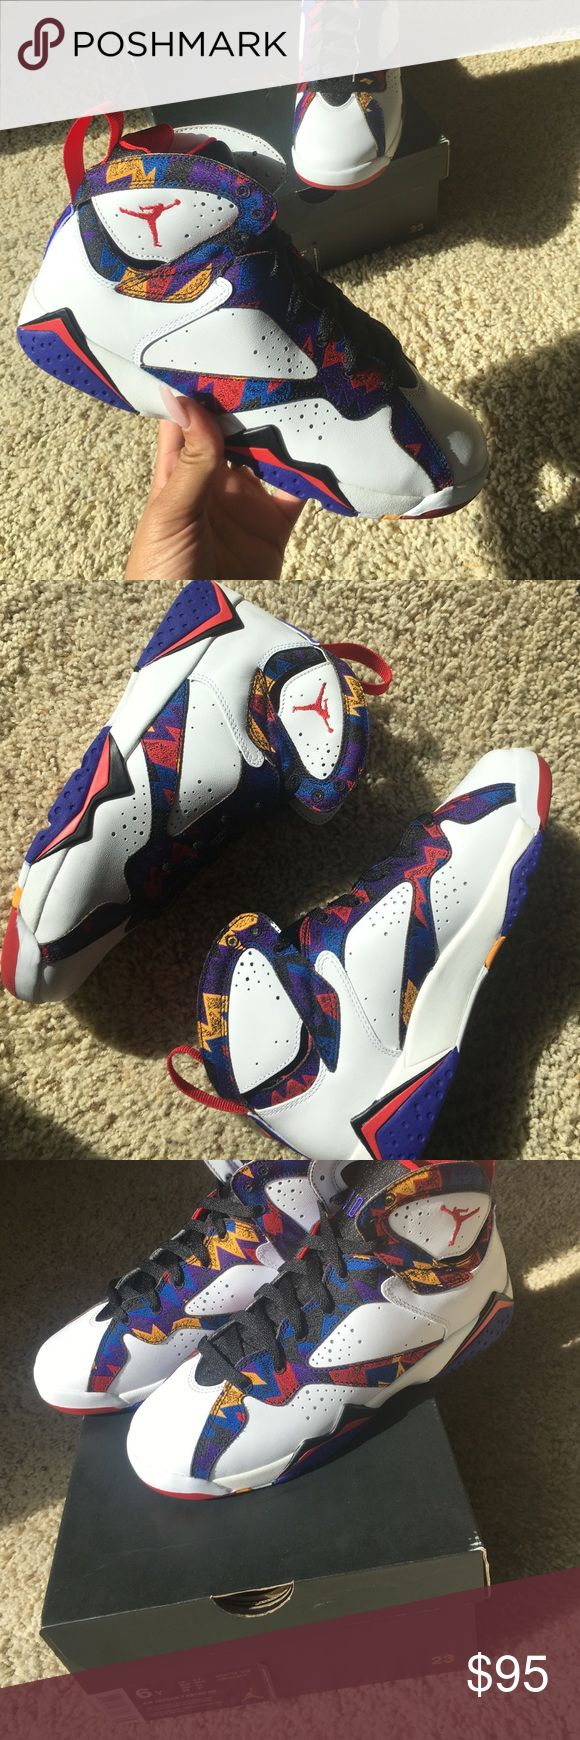 Air Jordan Retro 7's Jordan Retro 7's‼️ NEVER WORN. (Size 6 in GS or kids). White with accents of red, purple, black, blue and yellow. Jordan Shoes Athletic Shoes